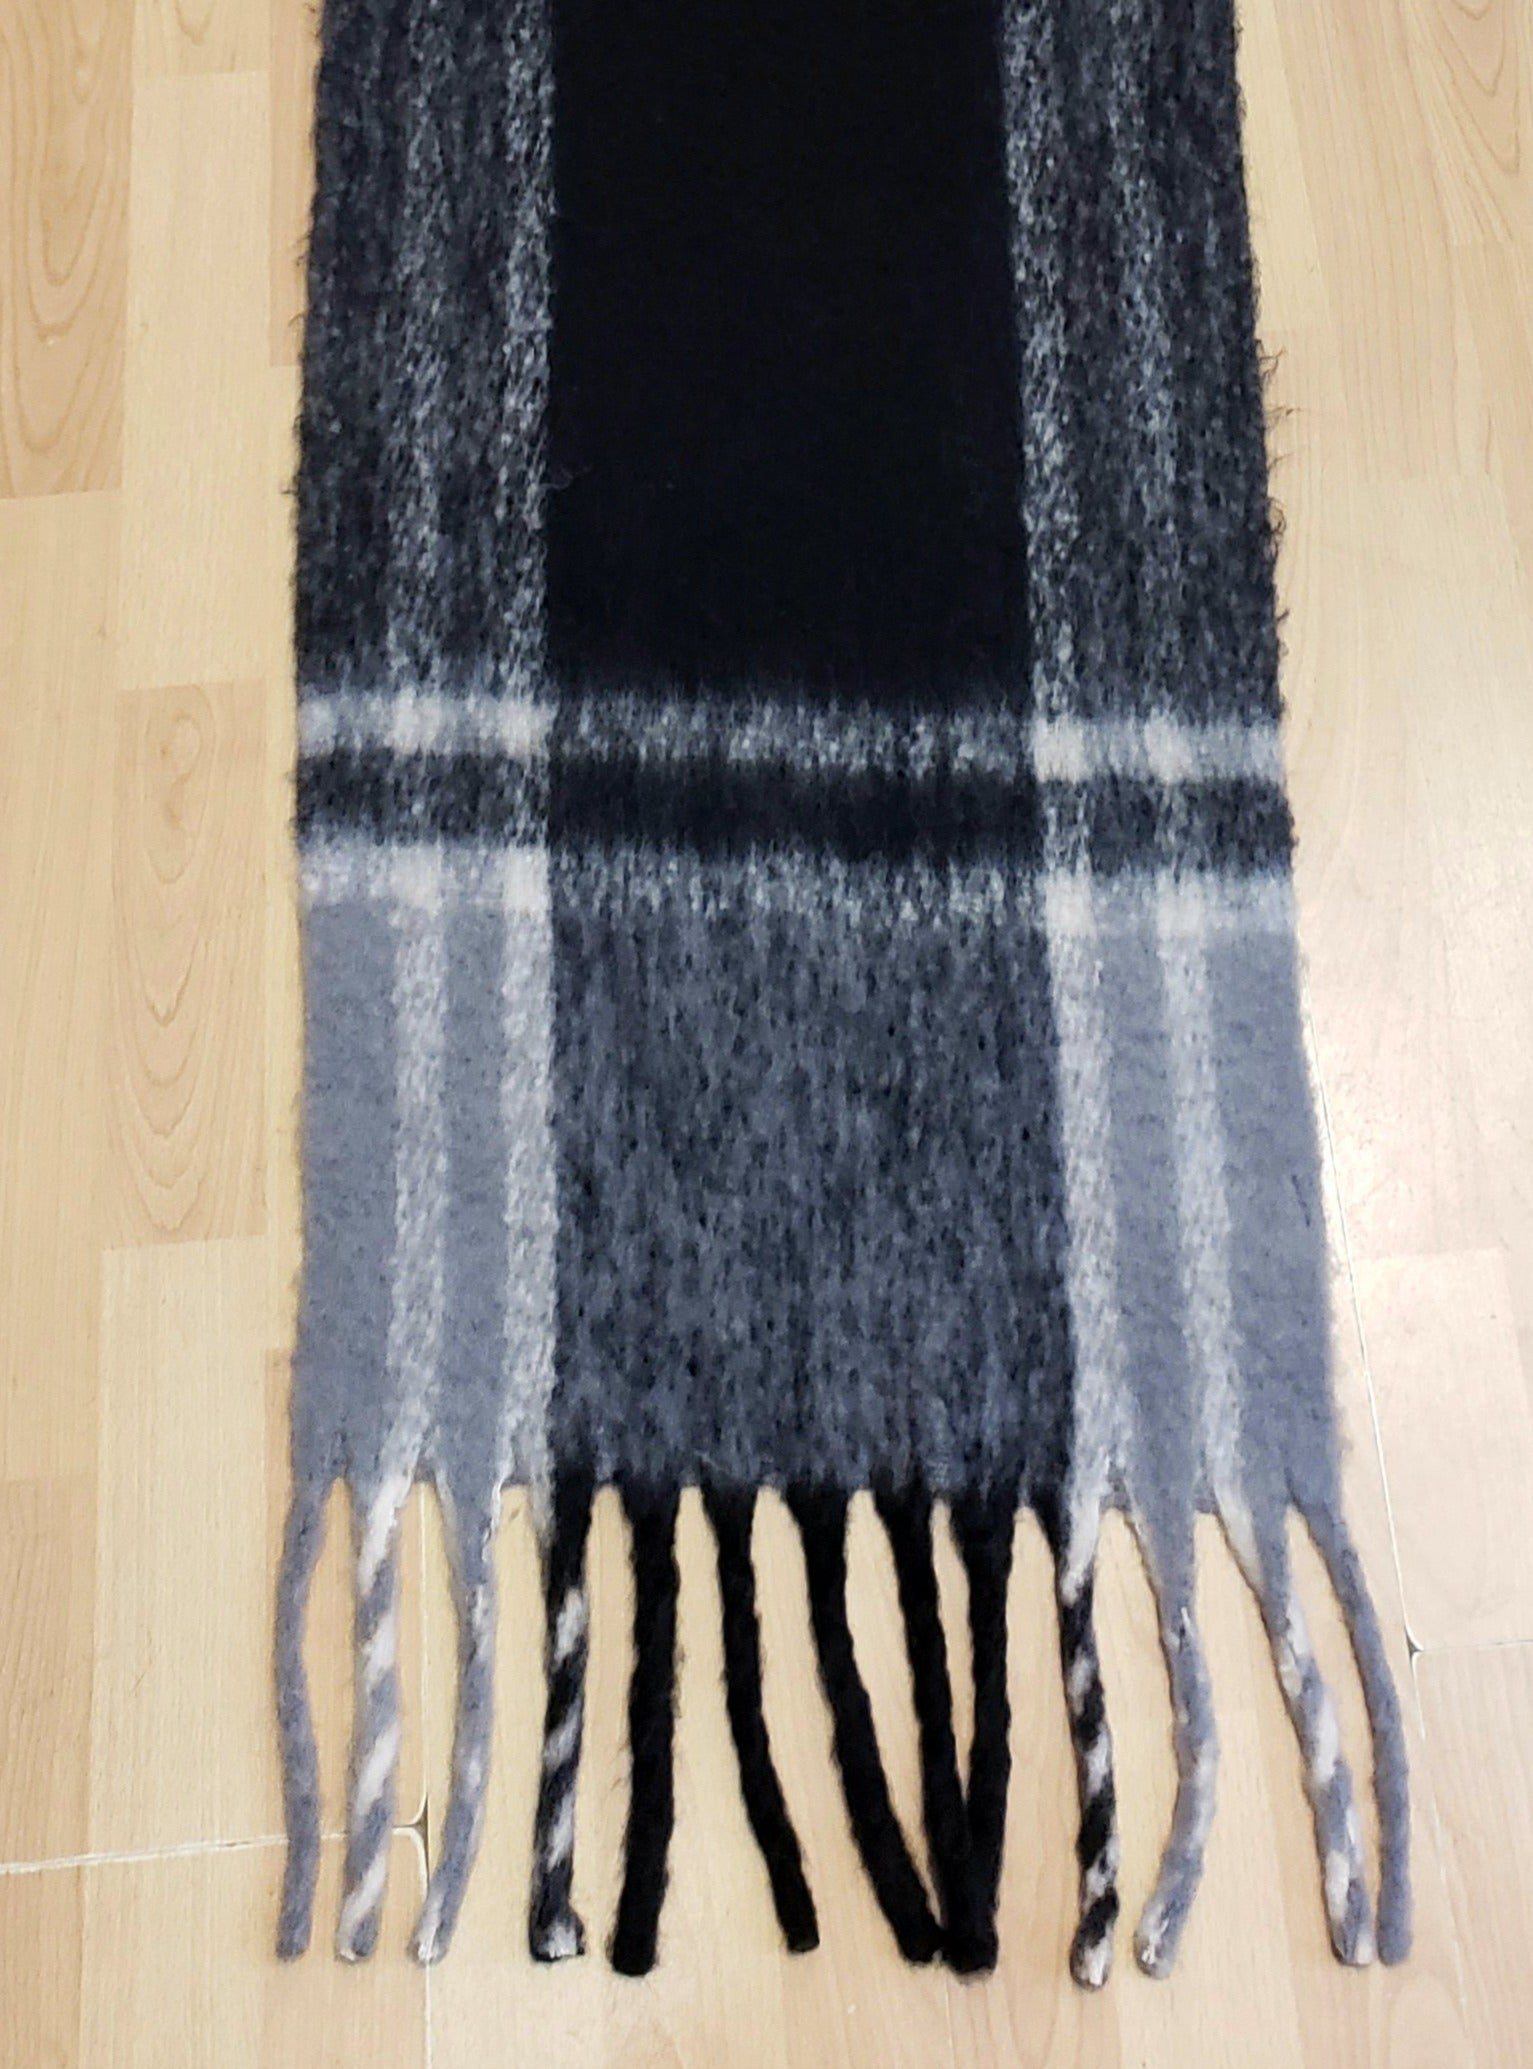 Large Plaid Scarf w/ Fringe in Black/Grey